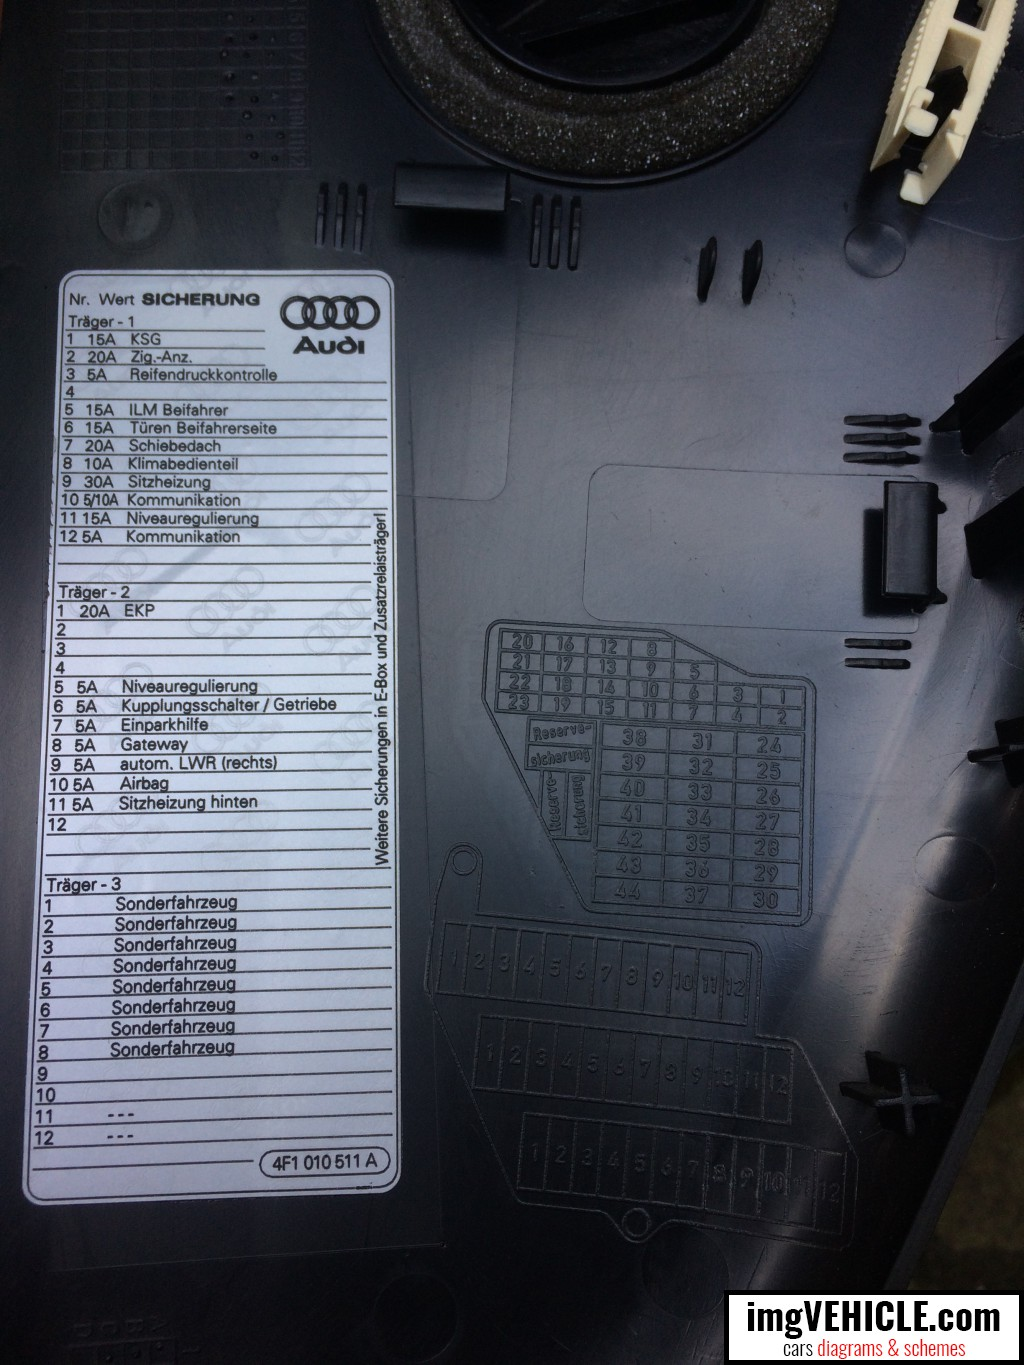 Audi A6 C6 Fuse Box Diagrams Schemes Make Your Own Car Dash Panel Diagram 2